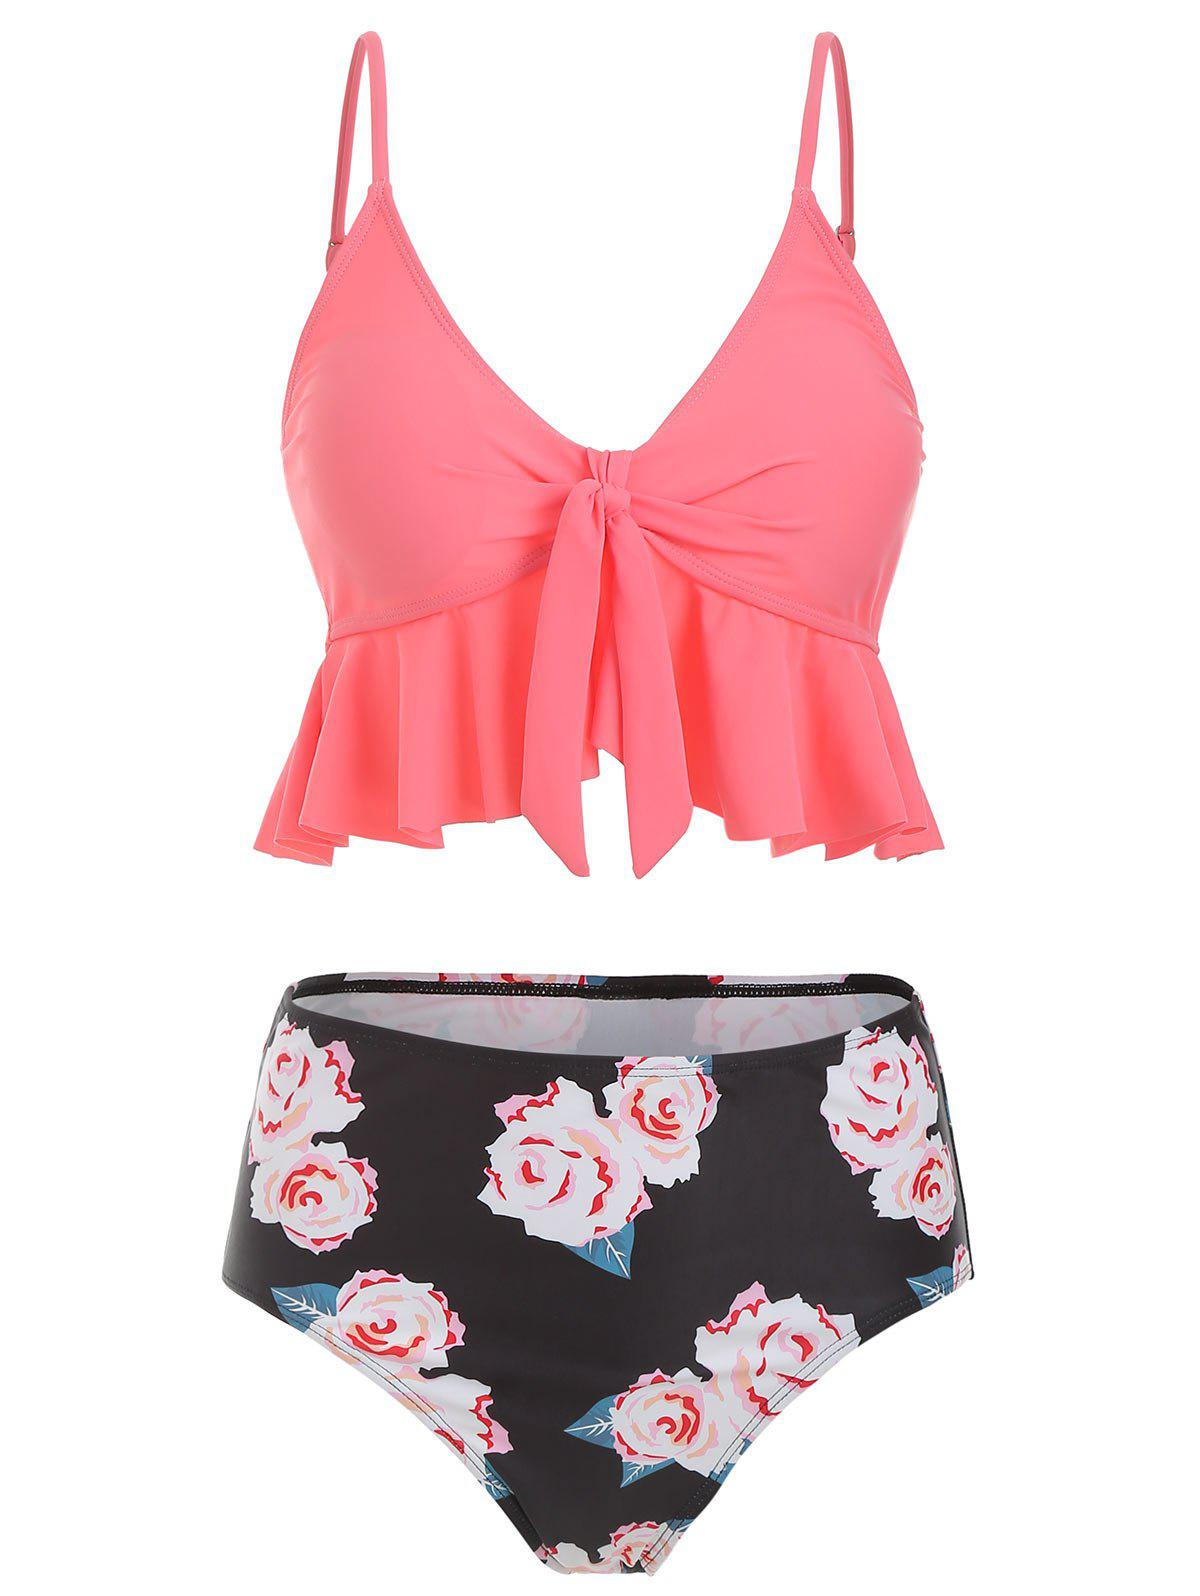 Flounce Floral High Waisted Tankini Set - multicolor L